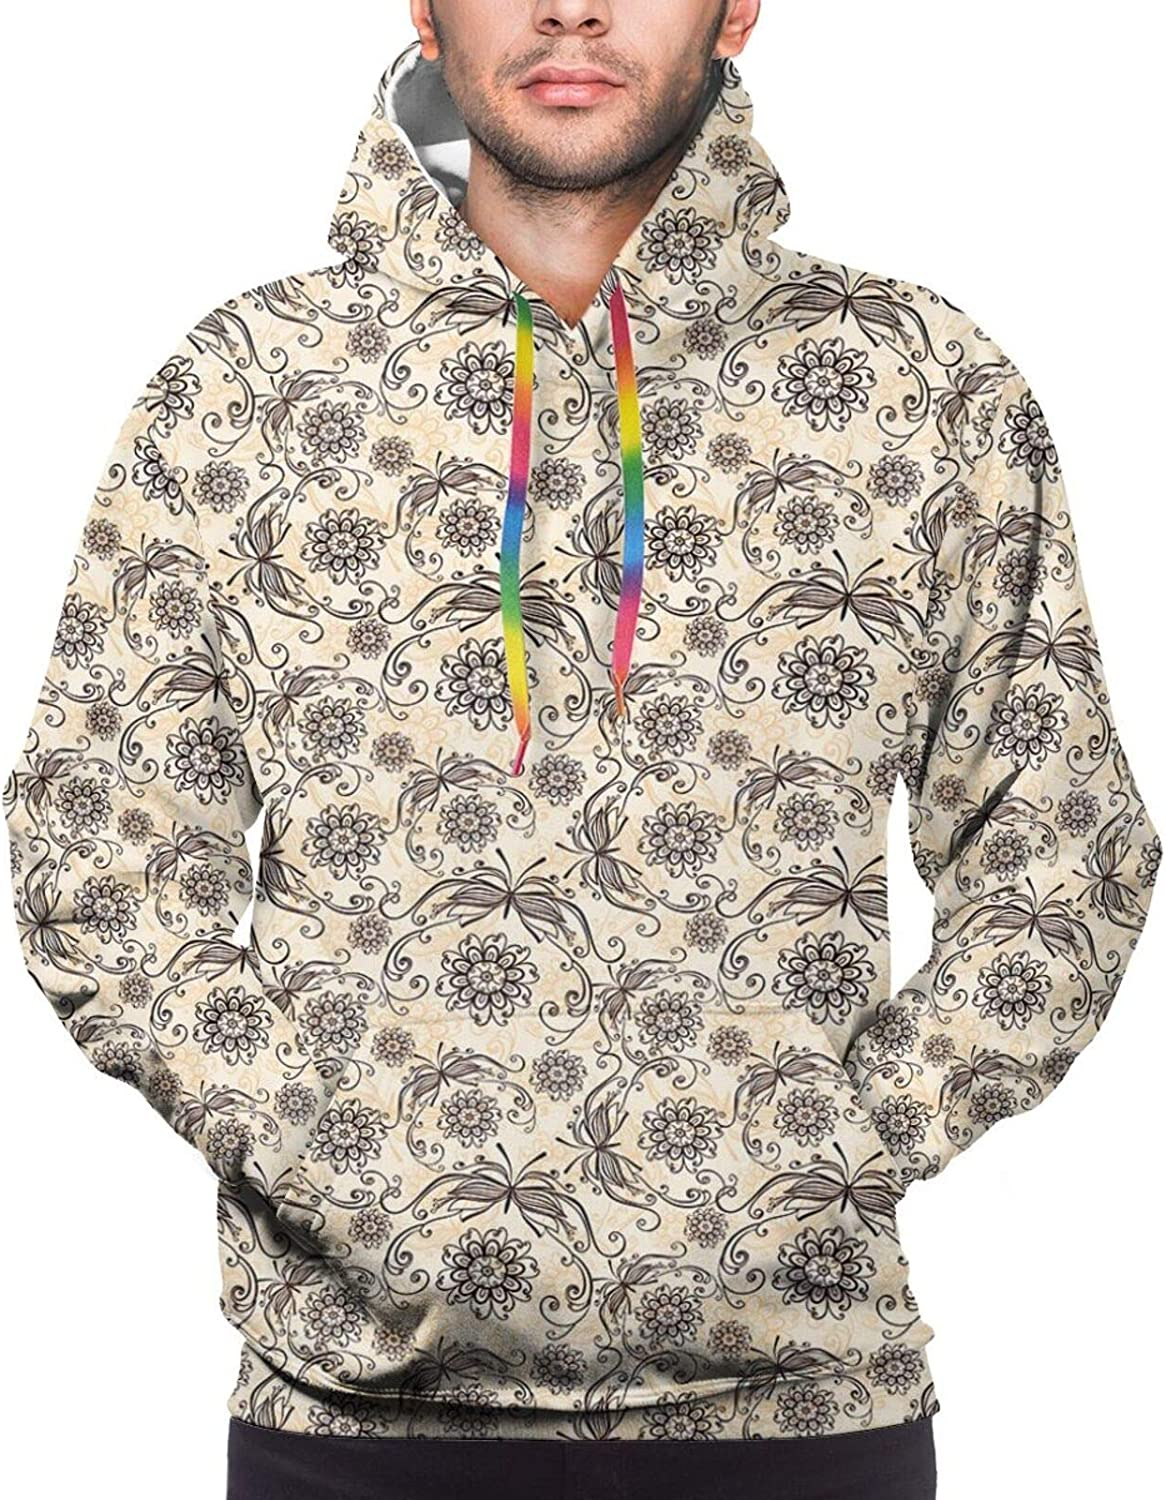 Men's Hoodies Sweatshirts,Nature Caricature with Funny Looking Birds and an Abstract Colored Tree Gardening